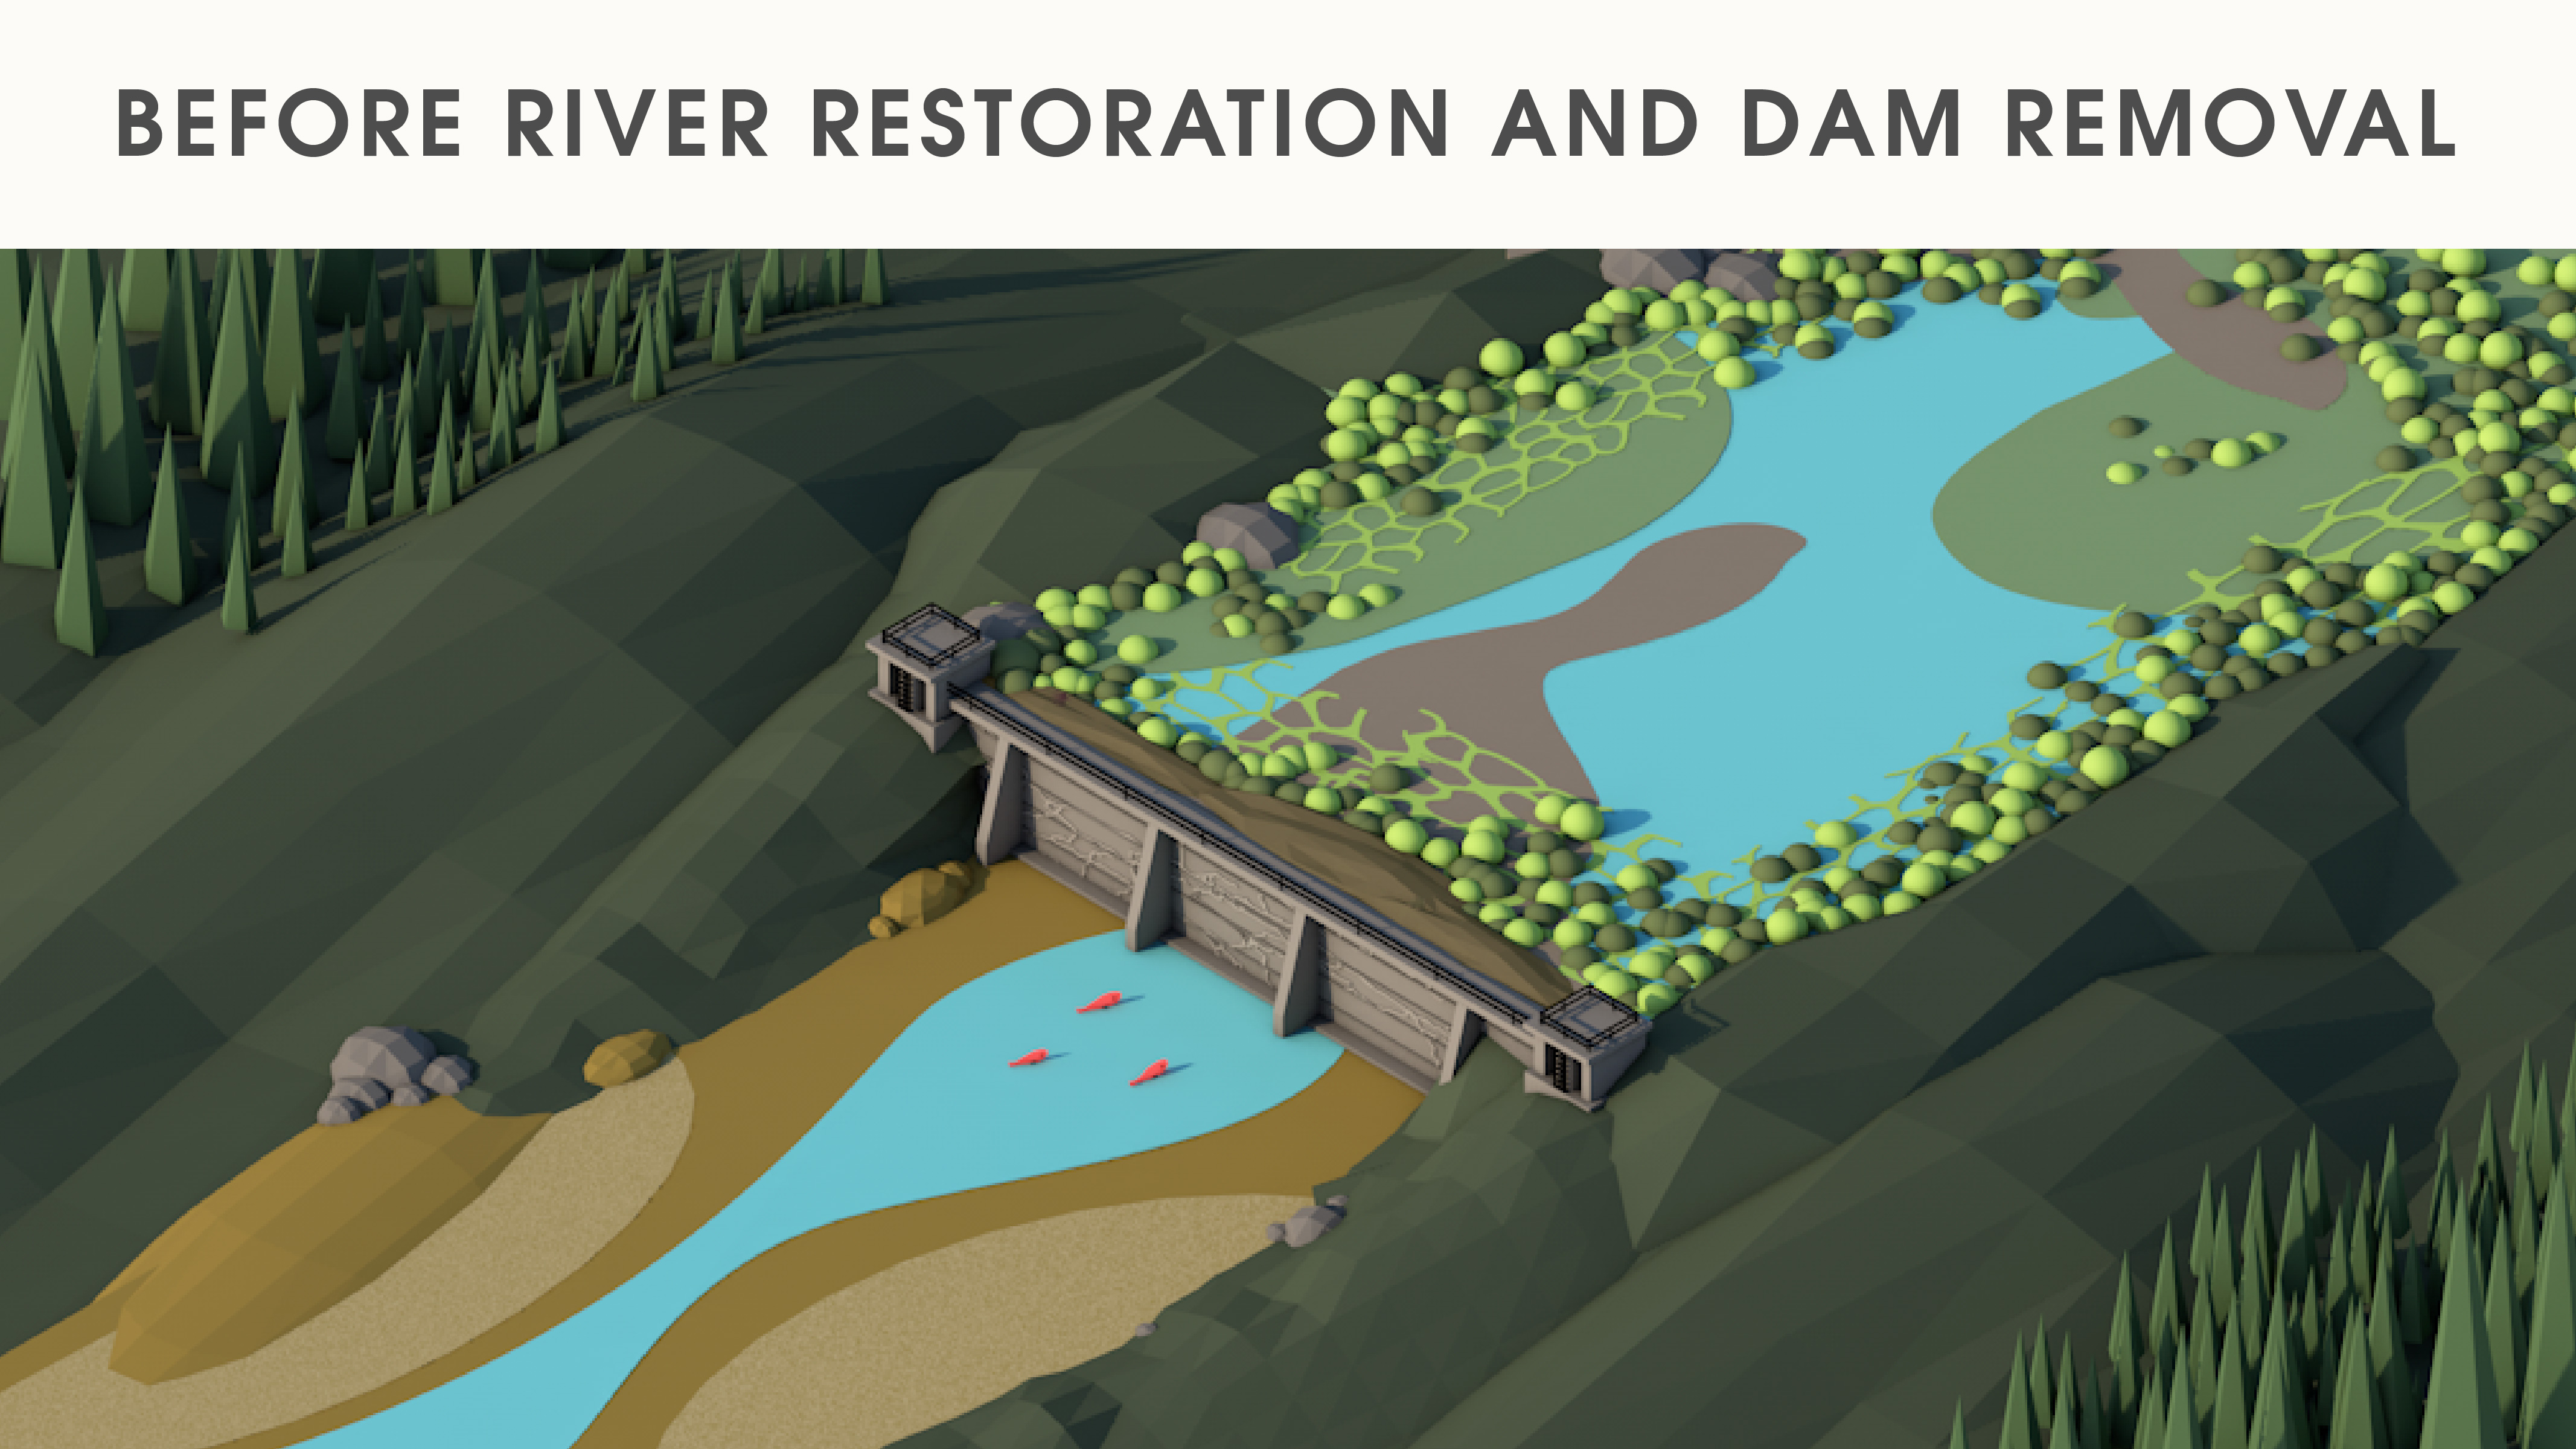 hewlett_foundation_dam_final_before_graphic_only_clean_1024x576